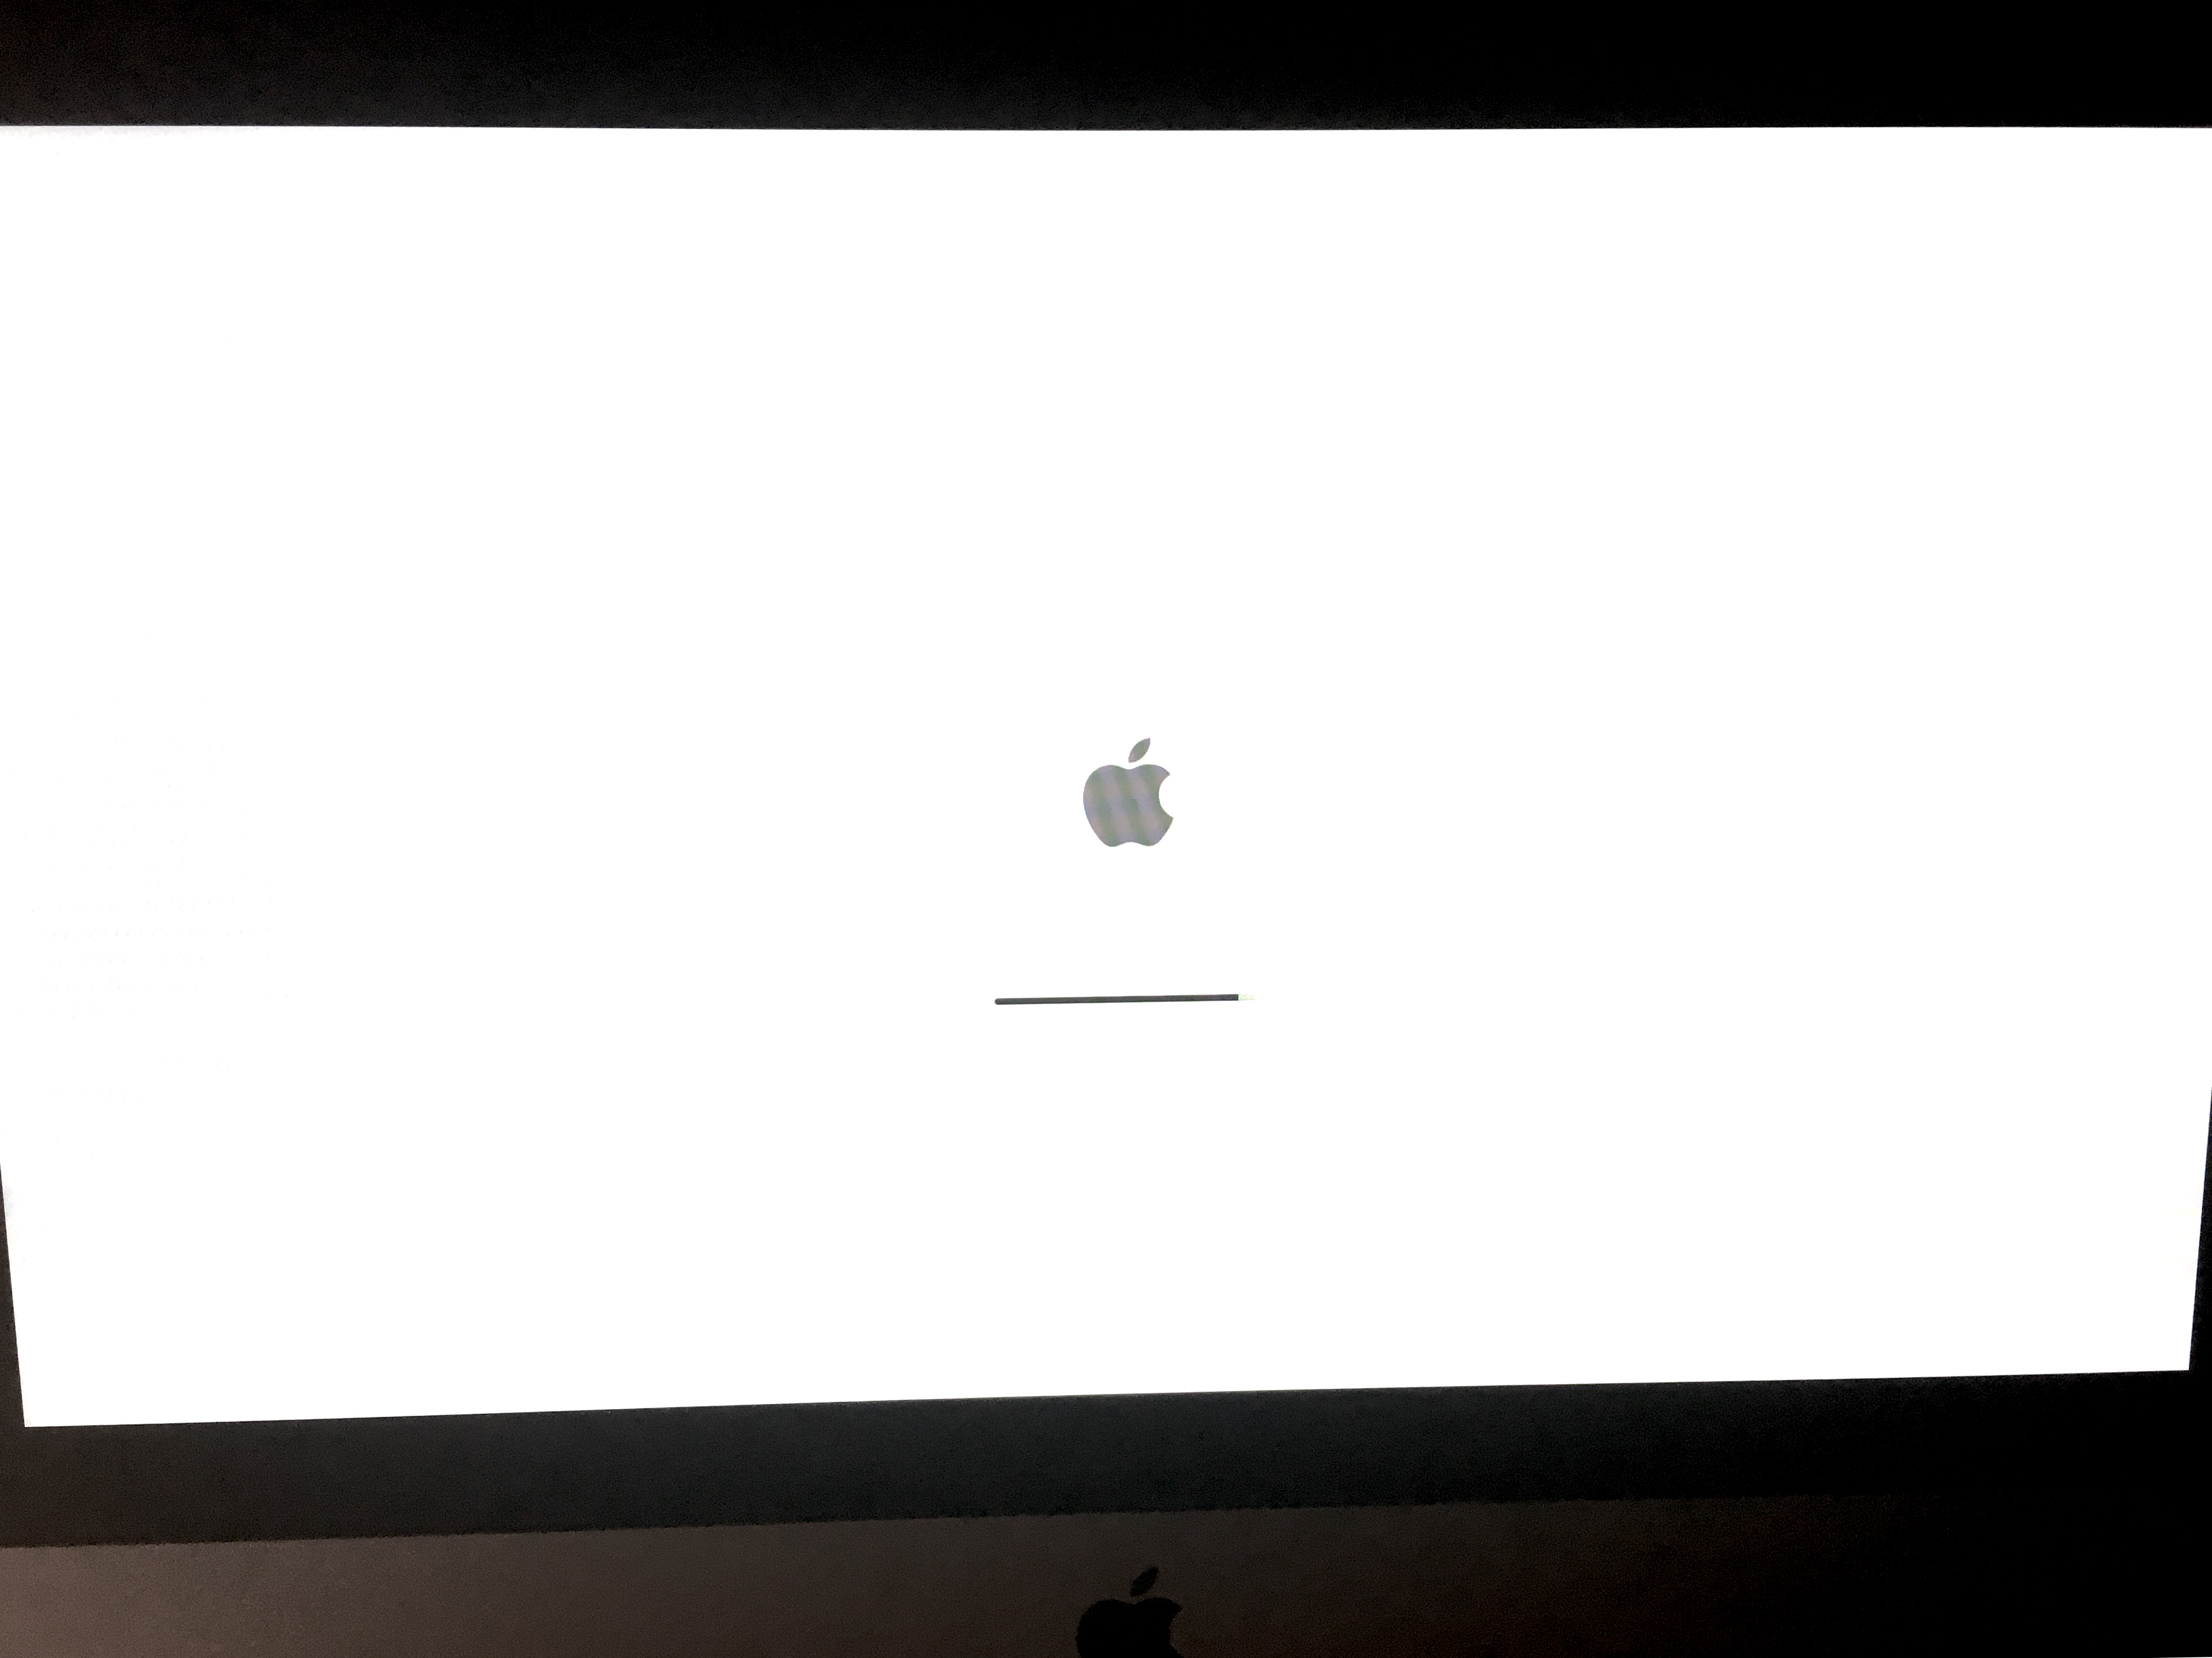 Overcome macOS High Sierra's Gray Screen of Death after OS